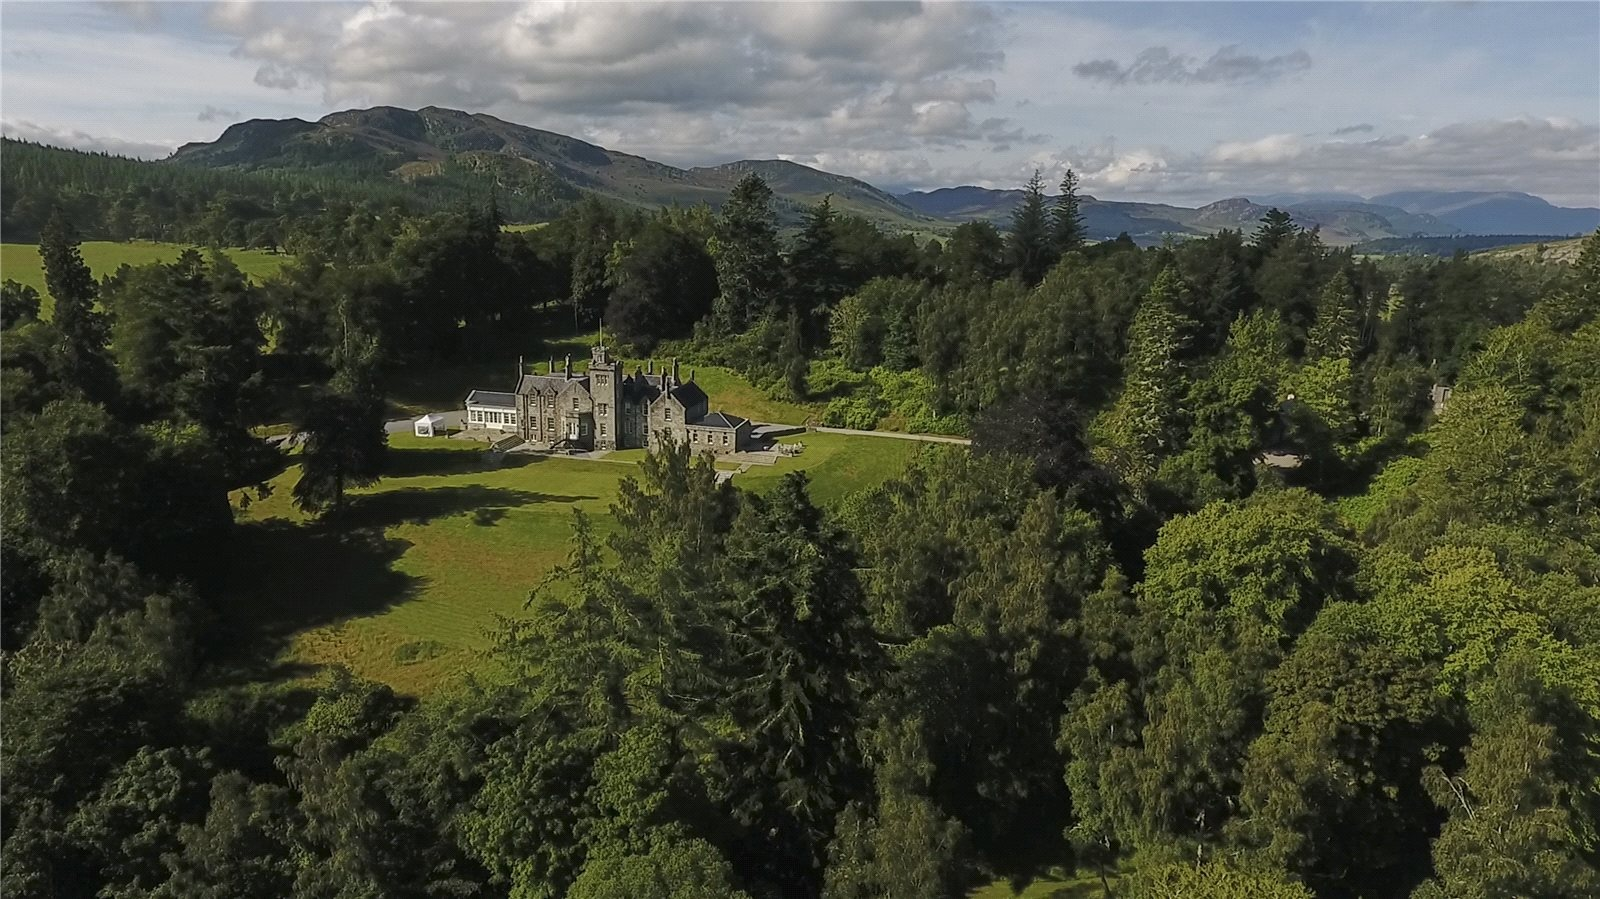 Glentruim House is a secluded retreat set against a backdrop of woodland, mountain, and meadow, long renowned as one of the most breathtaking locations in the Scottish Highlands.